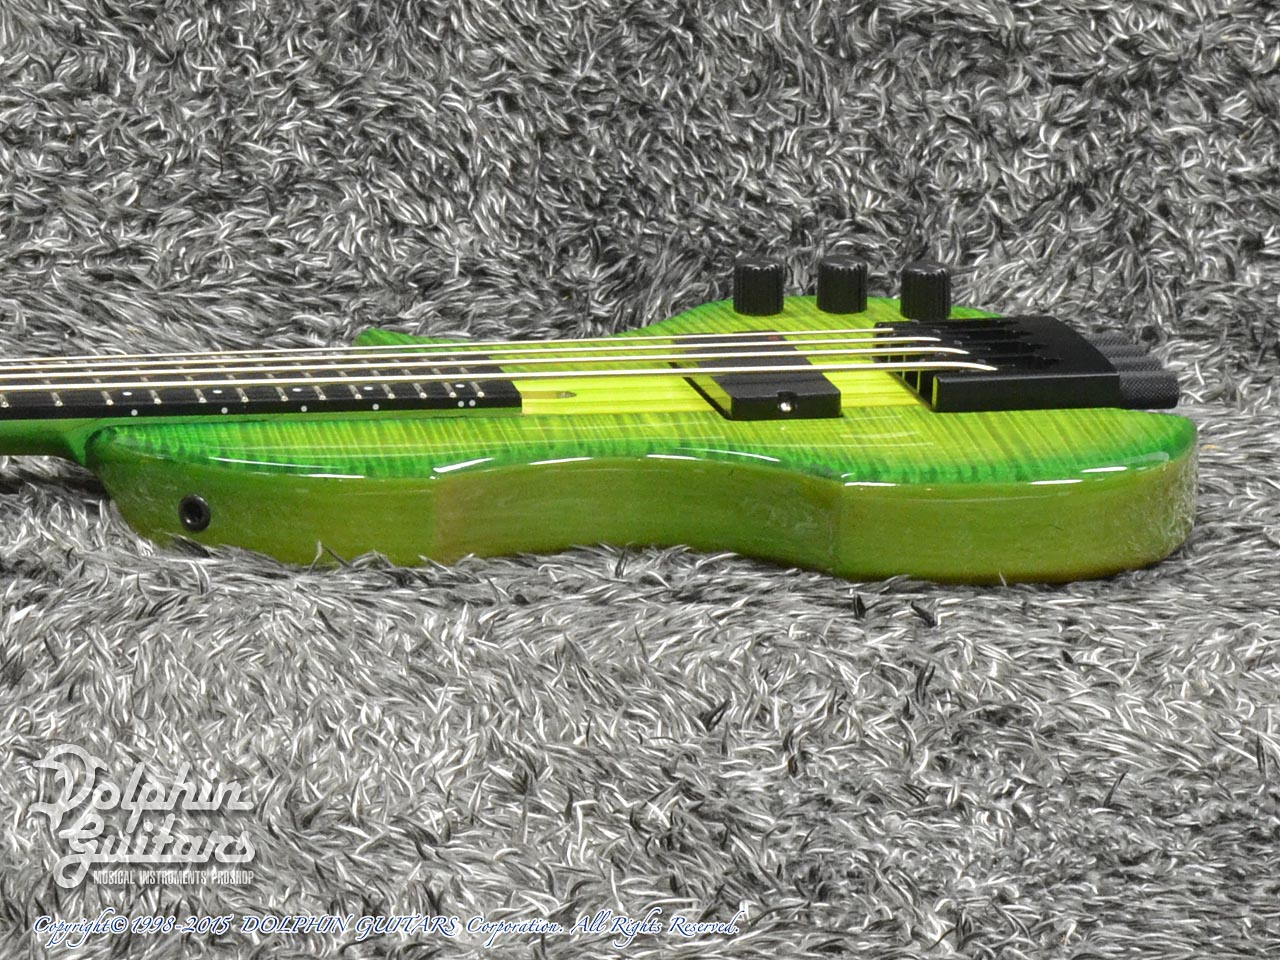 Charo's: CH-B4 Compact Headless Bass (Curly Maple & Alder) (Tropical Forest) (2)